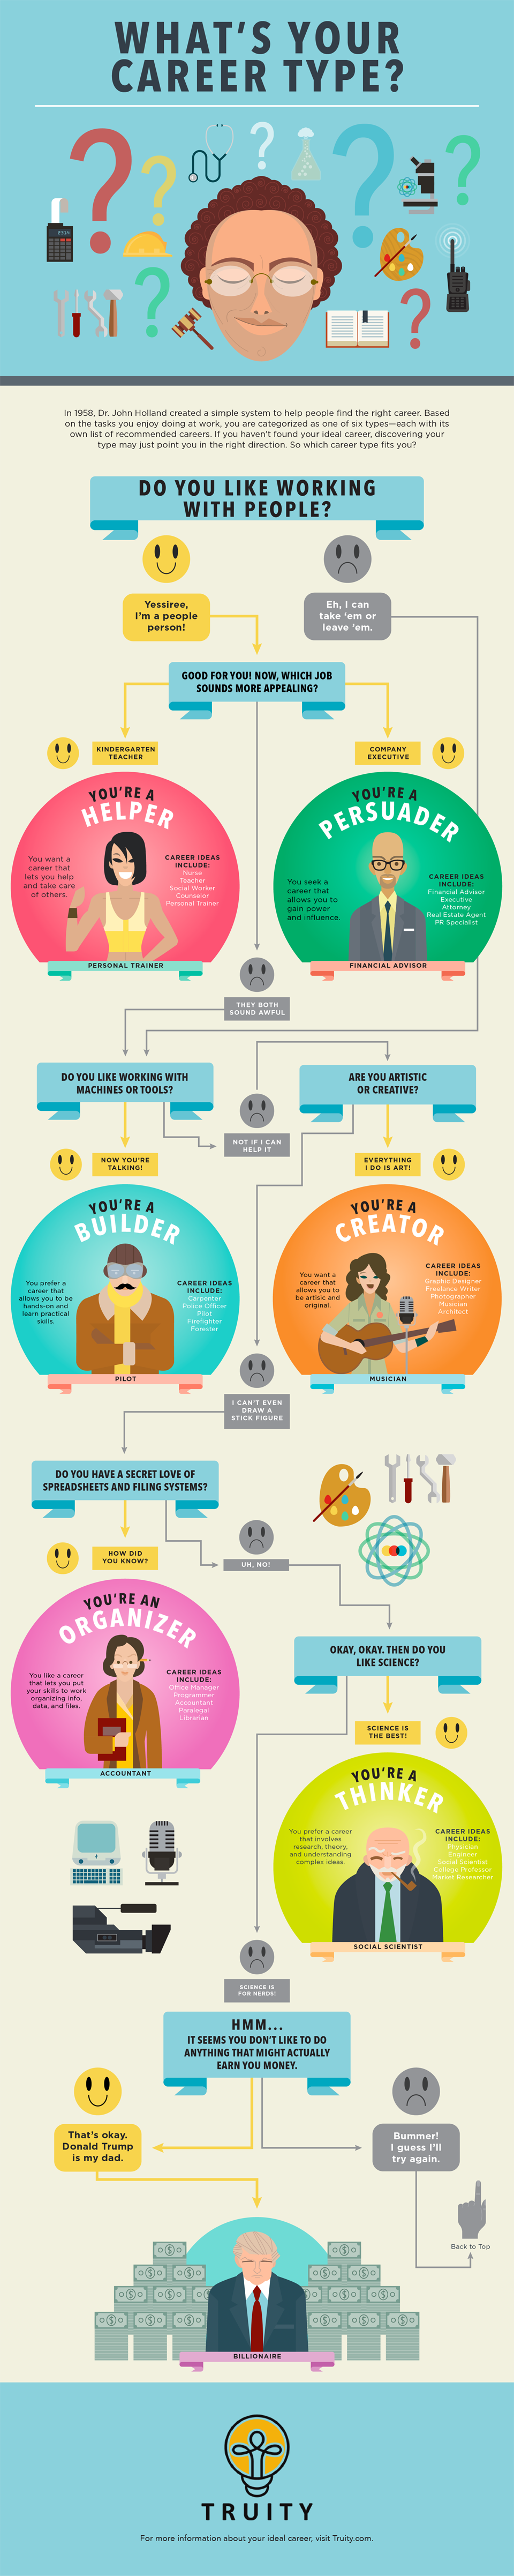 what's your career type? holland code infographic | truity, Human Body